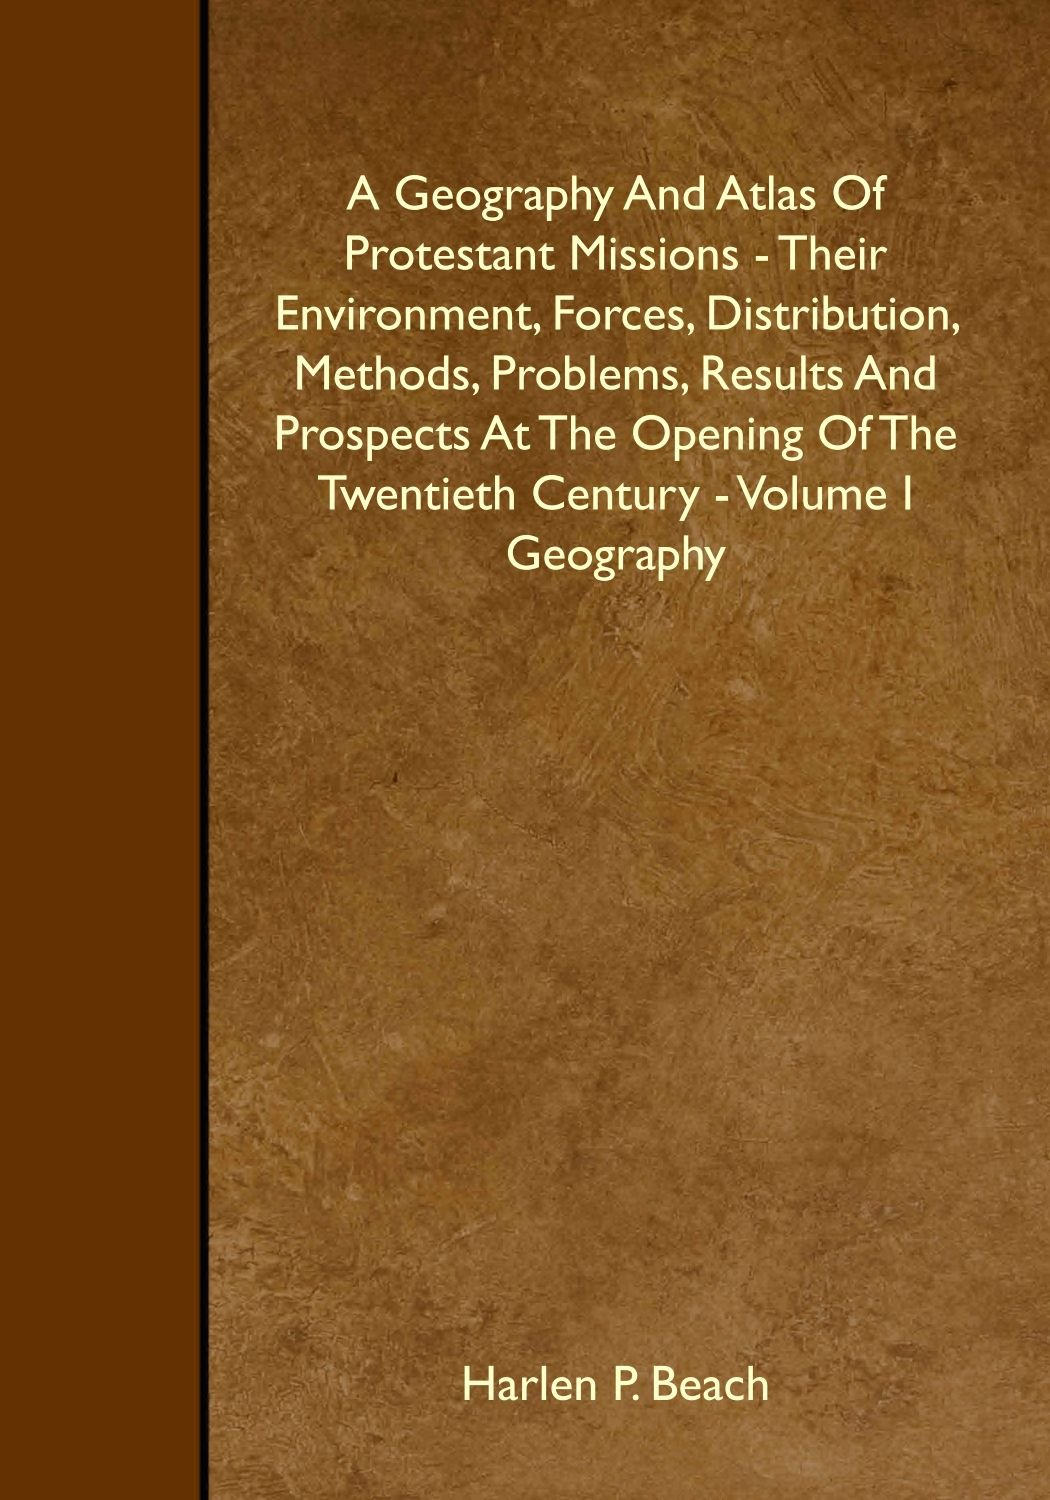 A Geography And Atlas Of Protestant Missions - Their Environment, Forces, Distribution, Methods, Problems, Results And Prospects At The Opening Of The Twentieth Century - Volume I Geography PDF